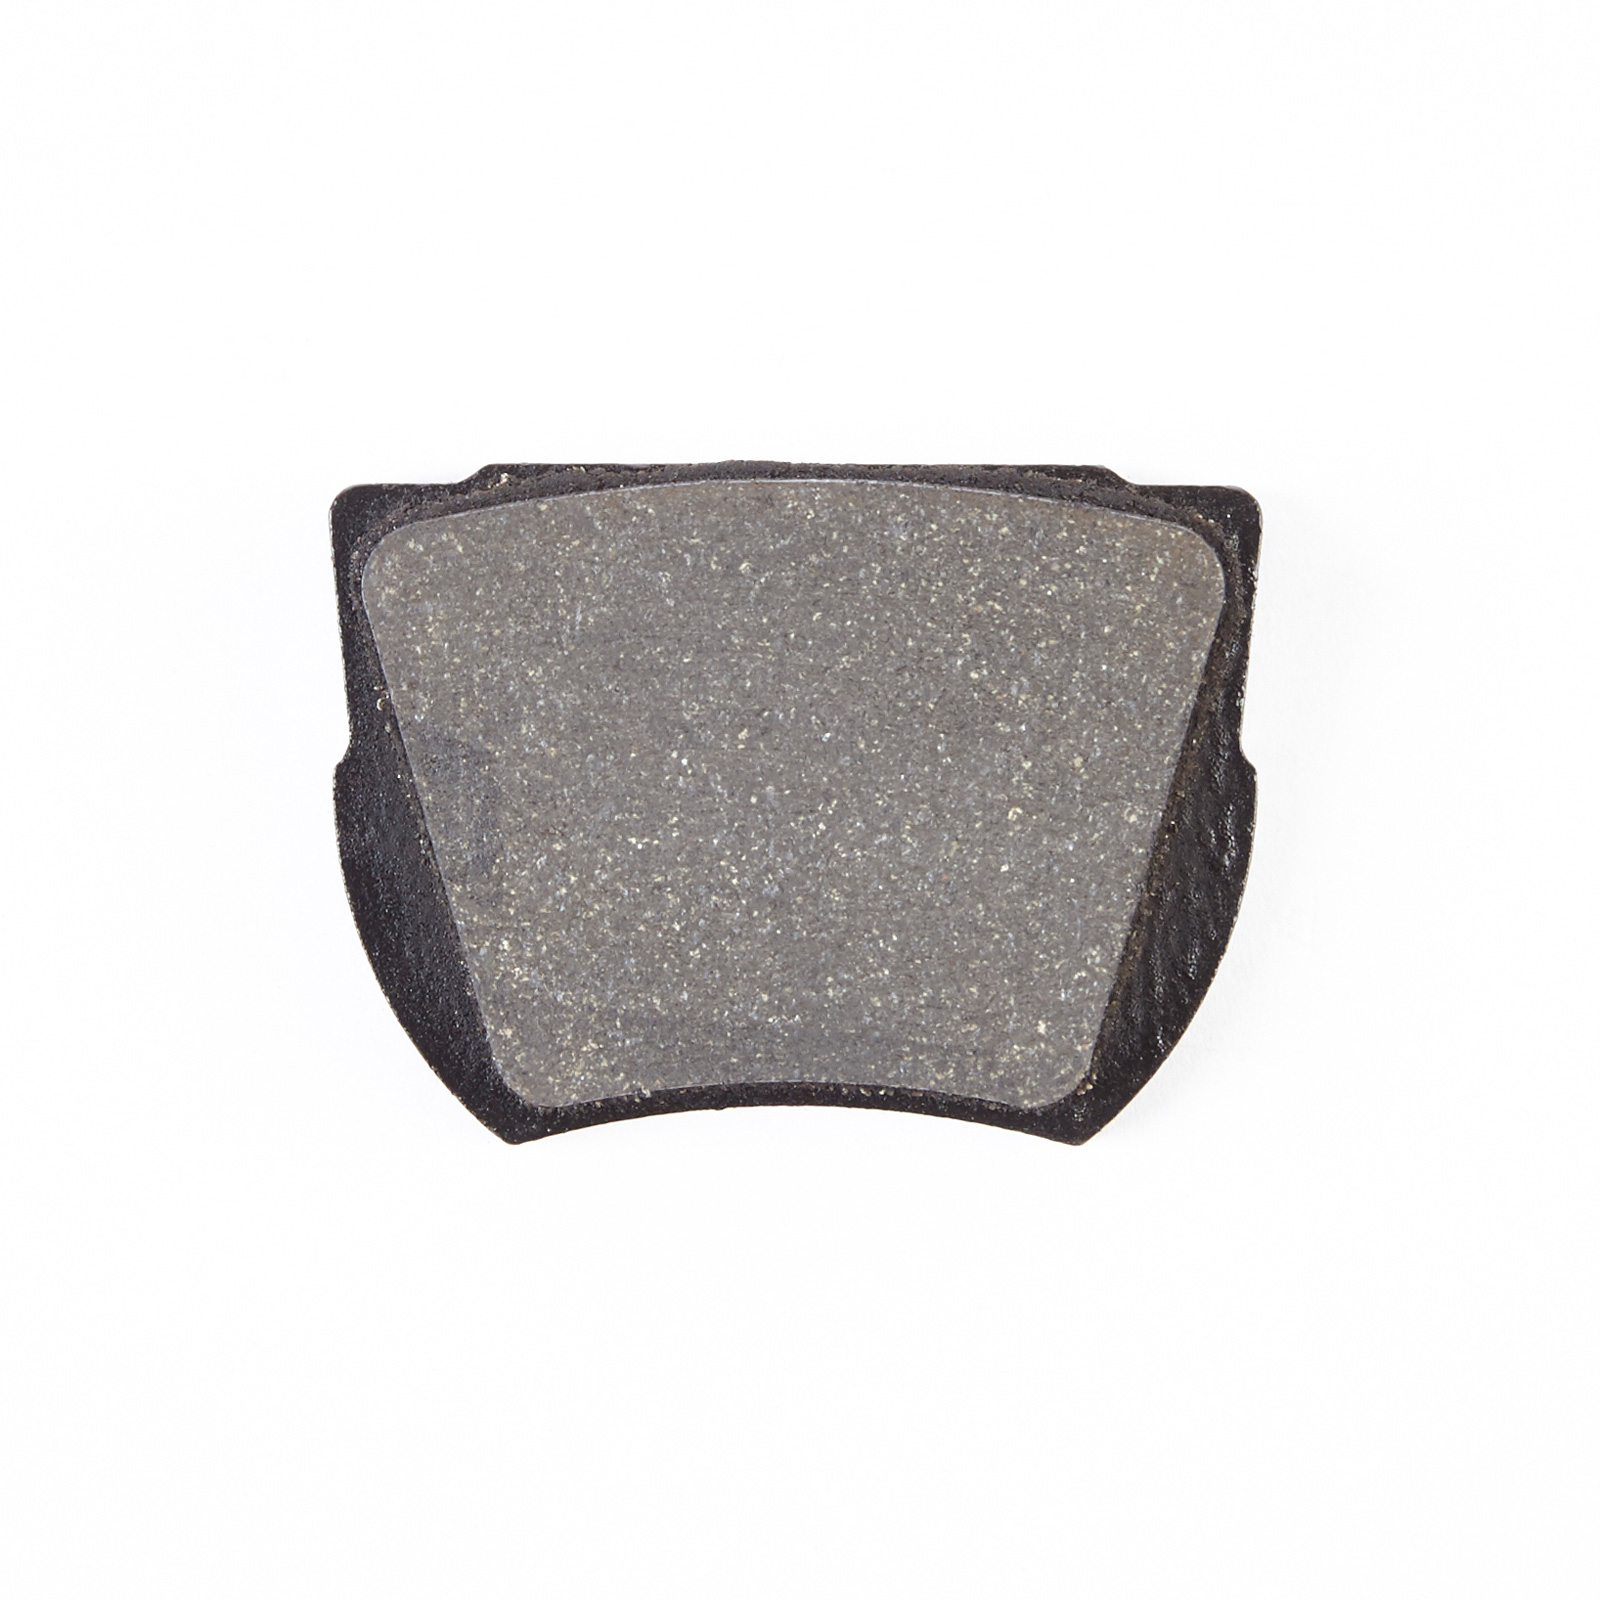 Ford Capri GT Brake Pads using the new MX4597 compound for better stopping power with low noise and extended life.